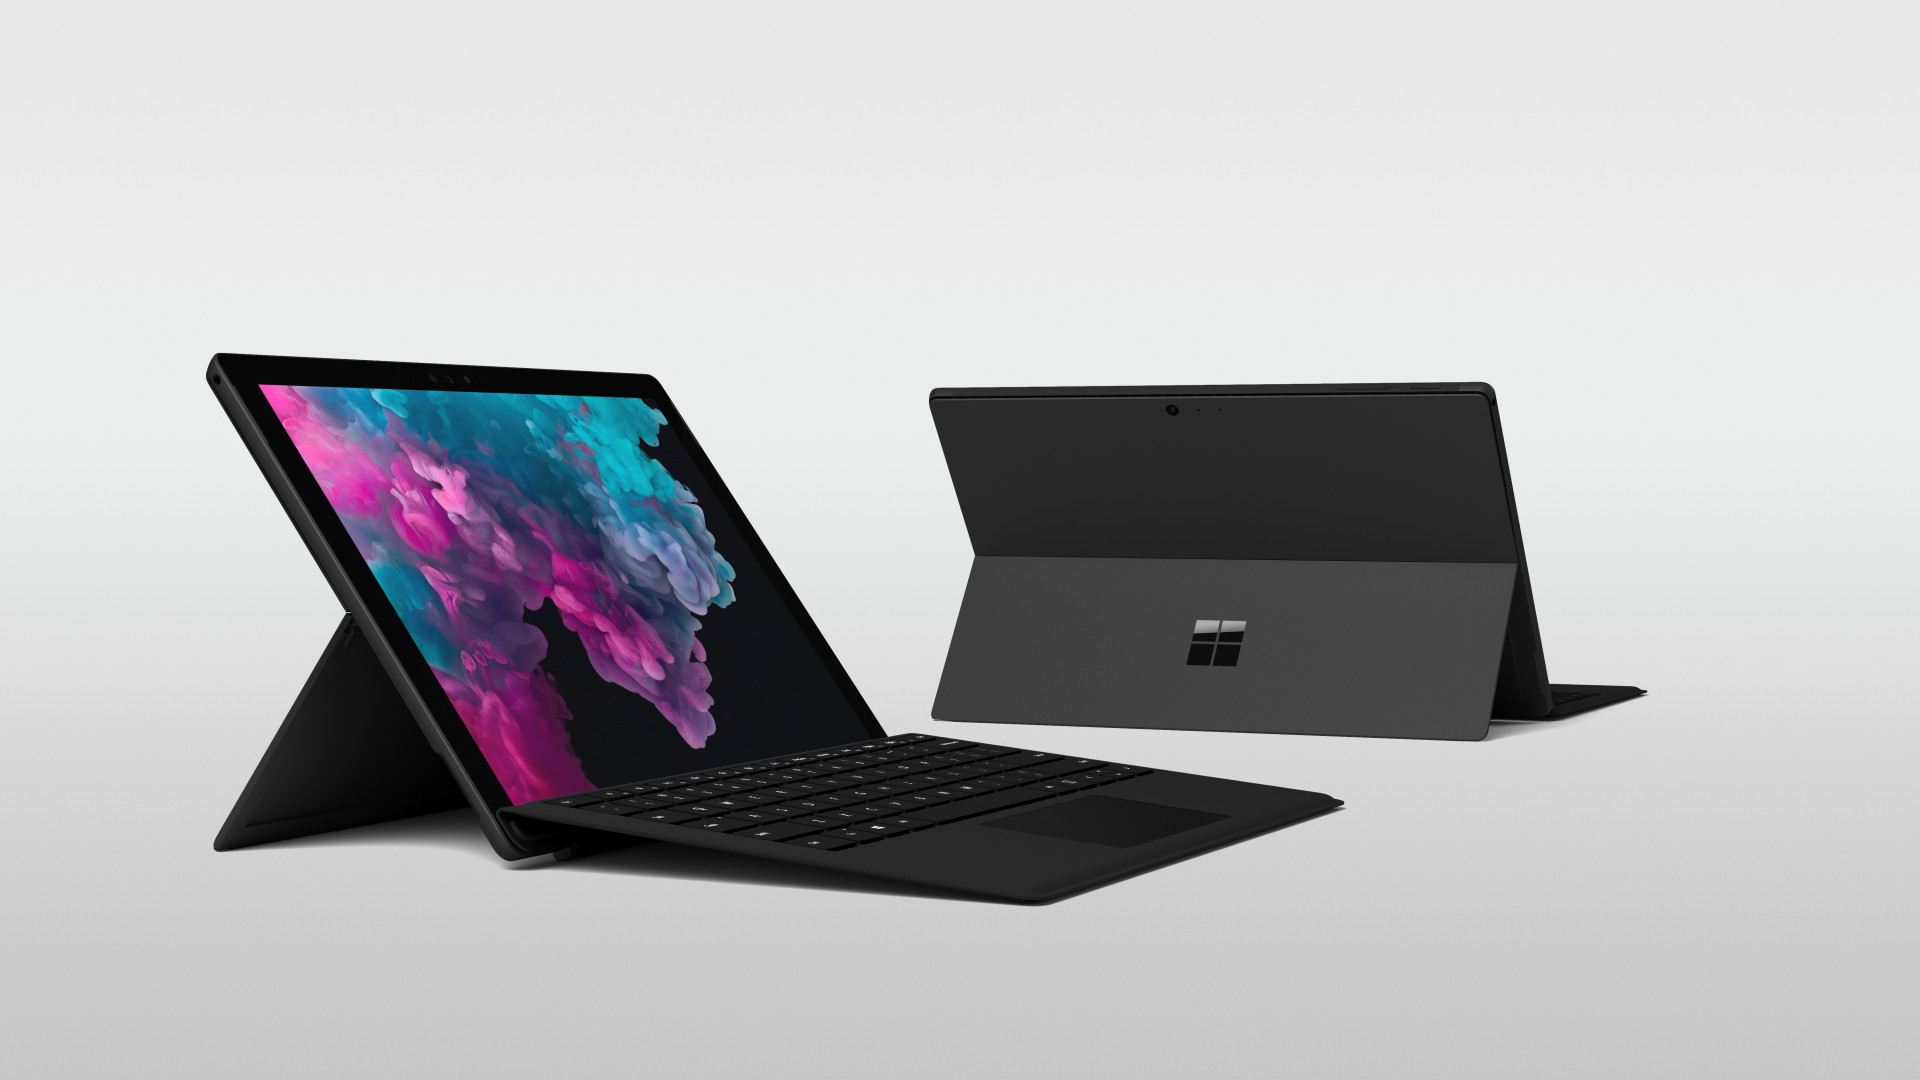 microsoft stellt kopfh rer vor surface pro 6 und laptop 2 mit quad core cpus heise online. Black Bedroom Furniture Sets. Home Design Ideas